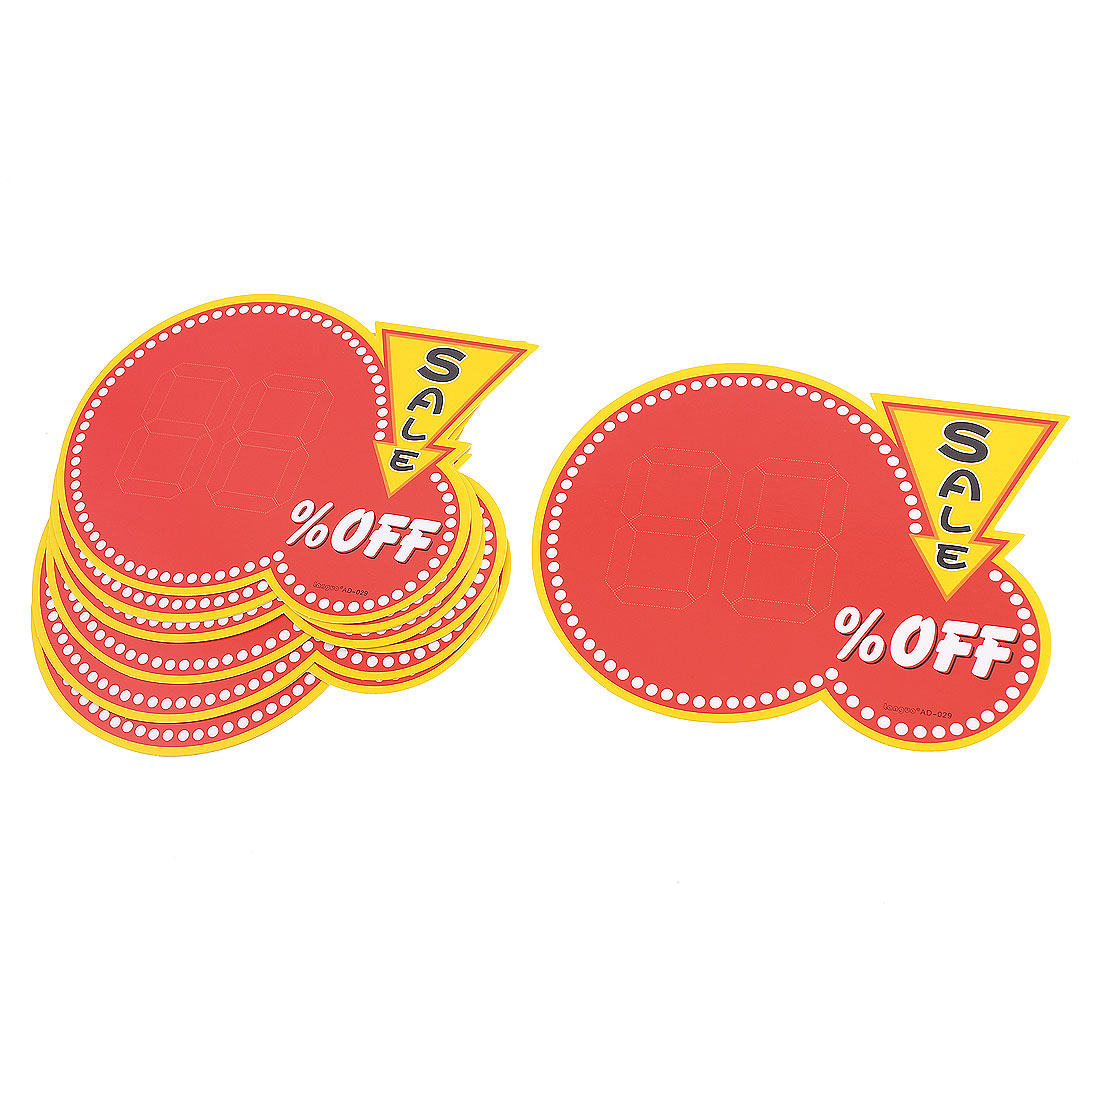 10 Pcs 2-Number Sign Off Sale Printed Advertising Pop Price Tags Paper Cards